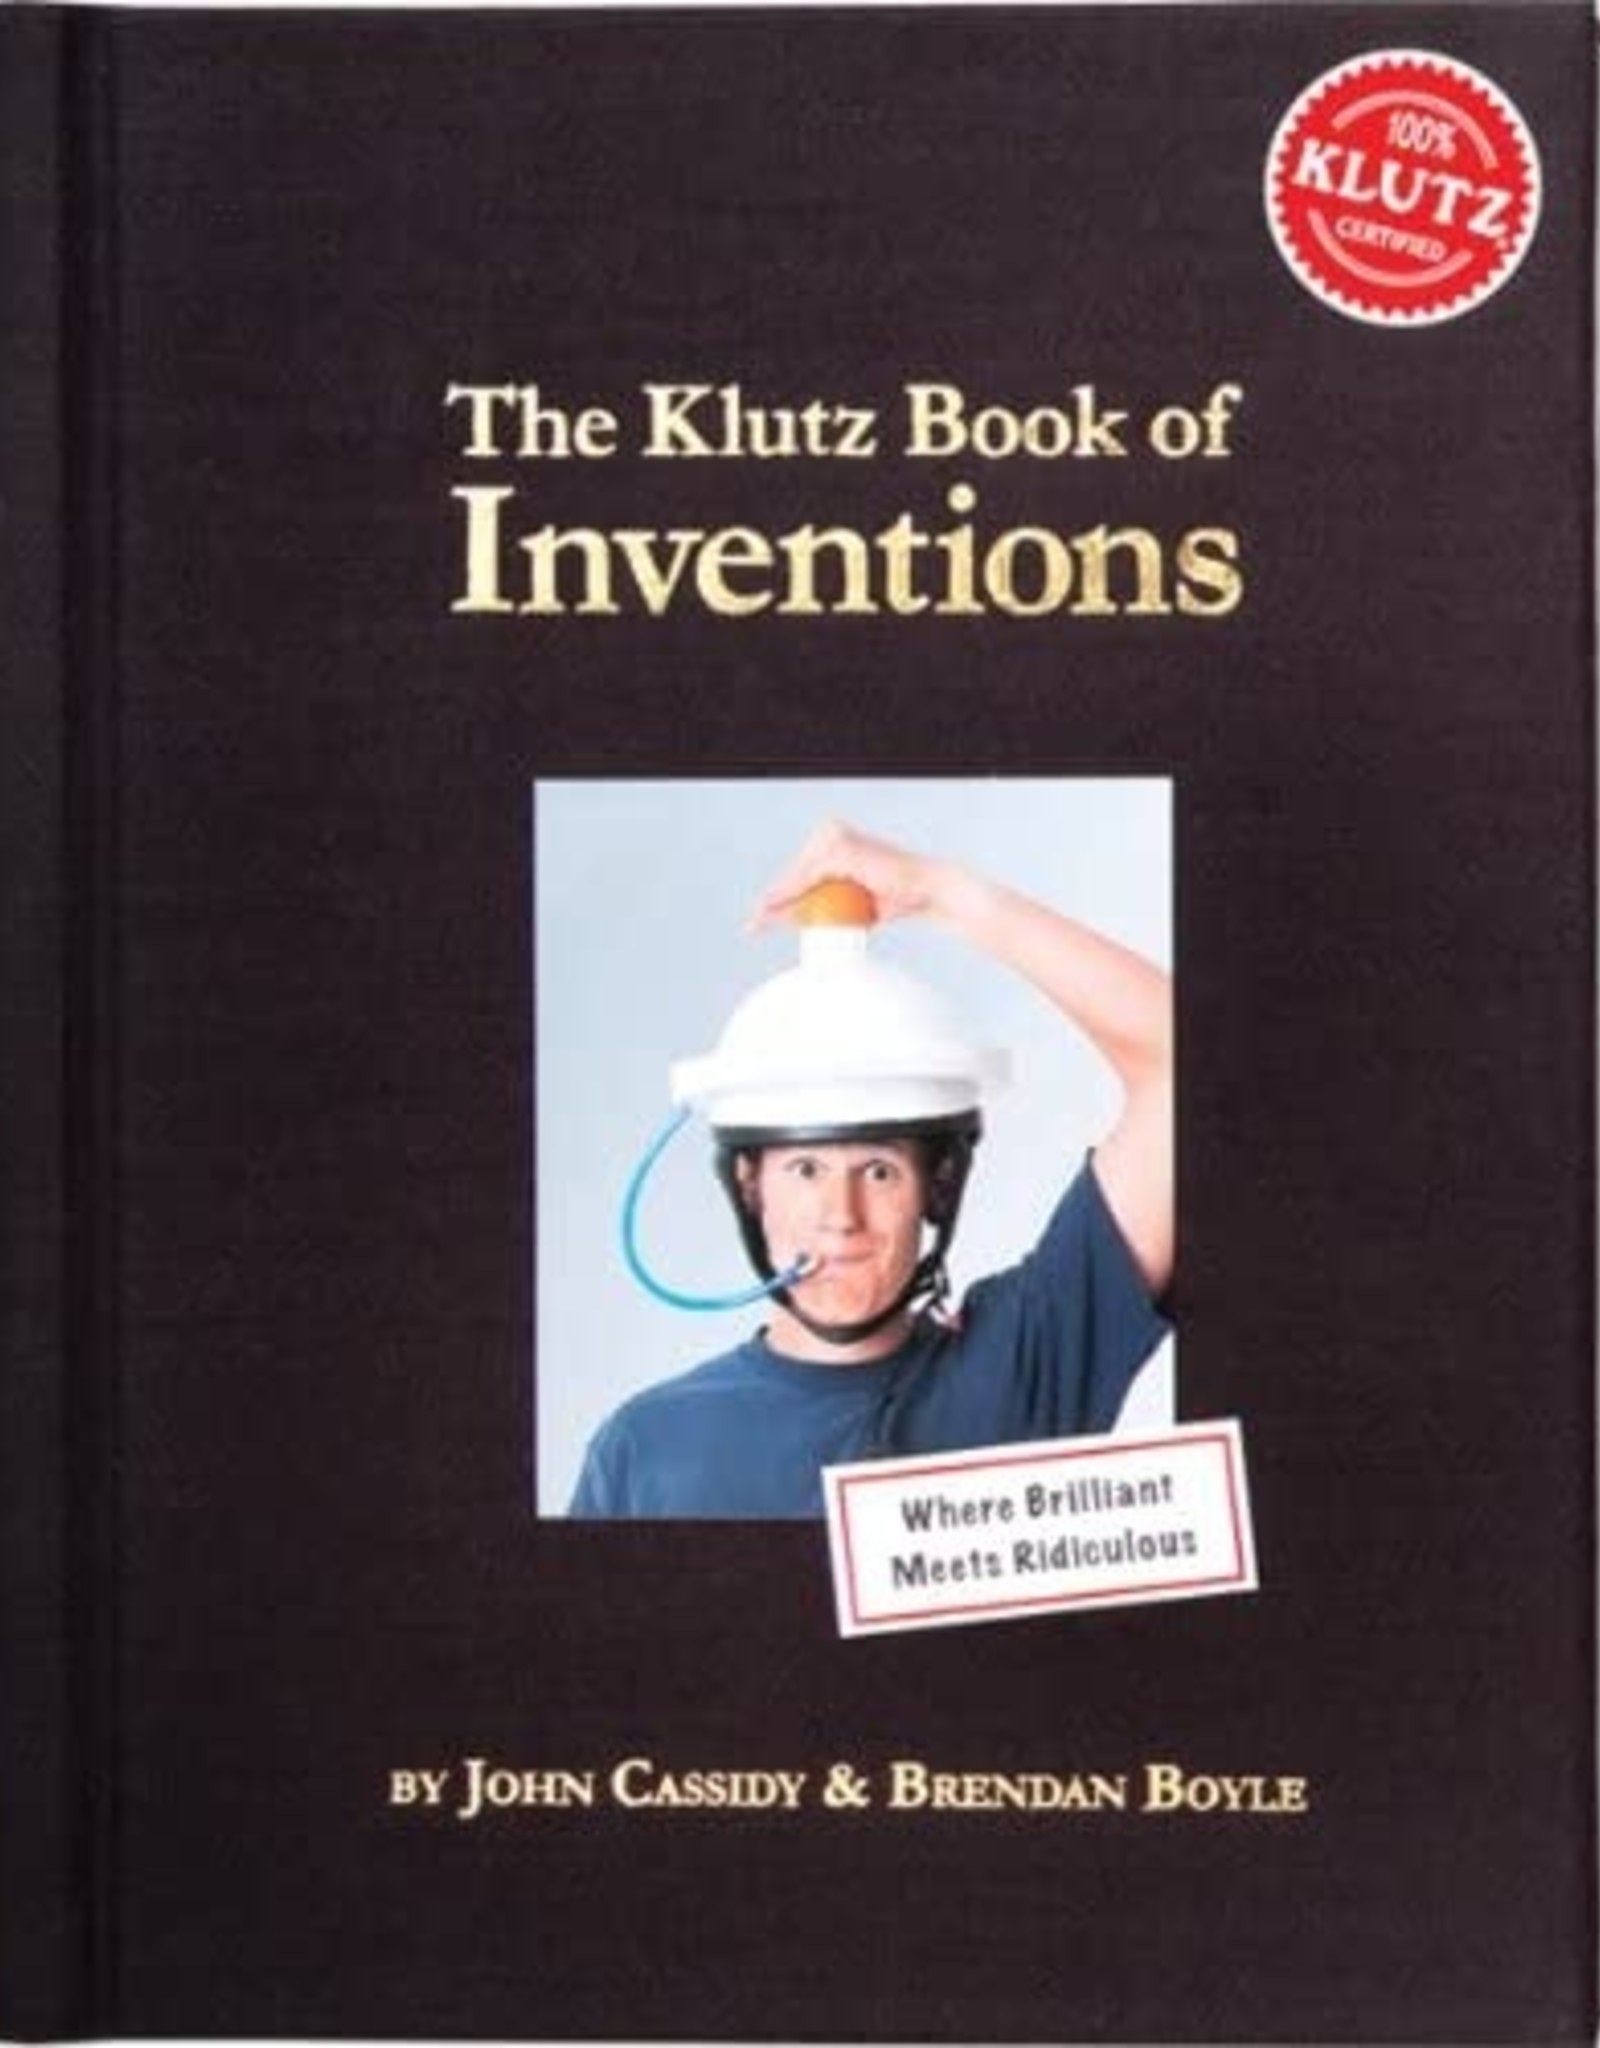 Klutz Klutz Book of Inventions